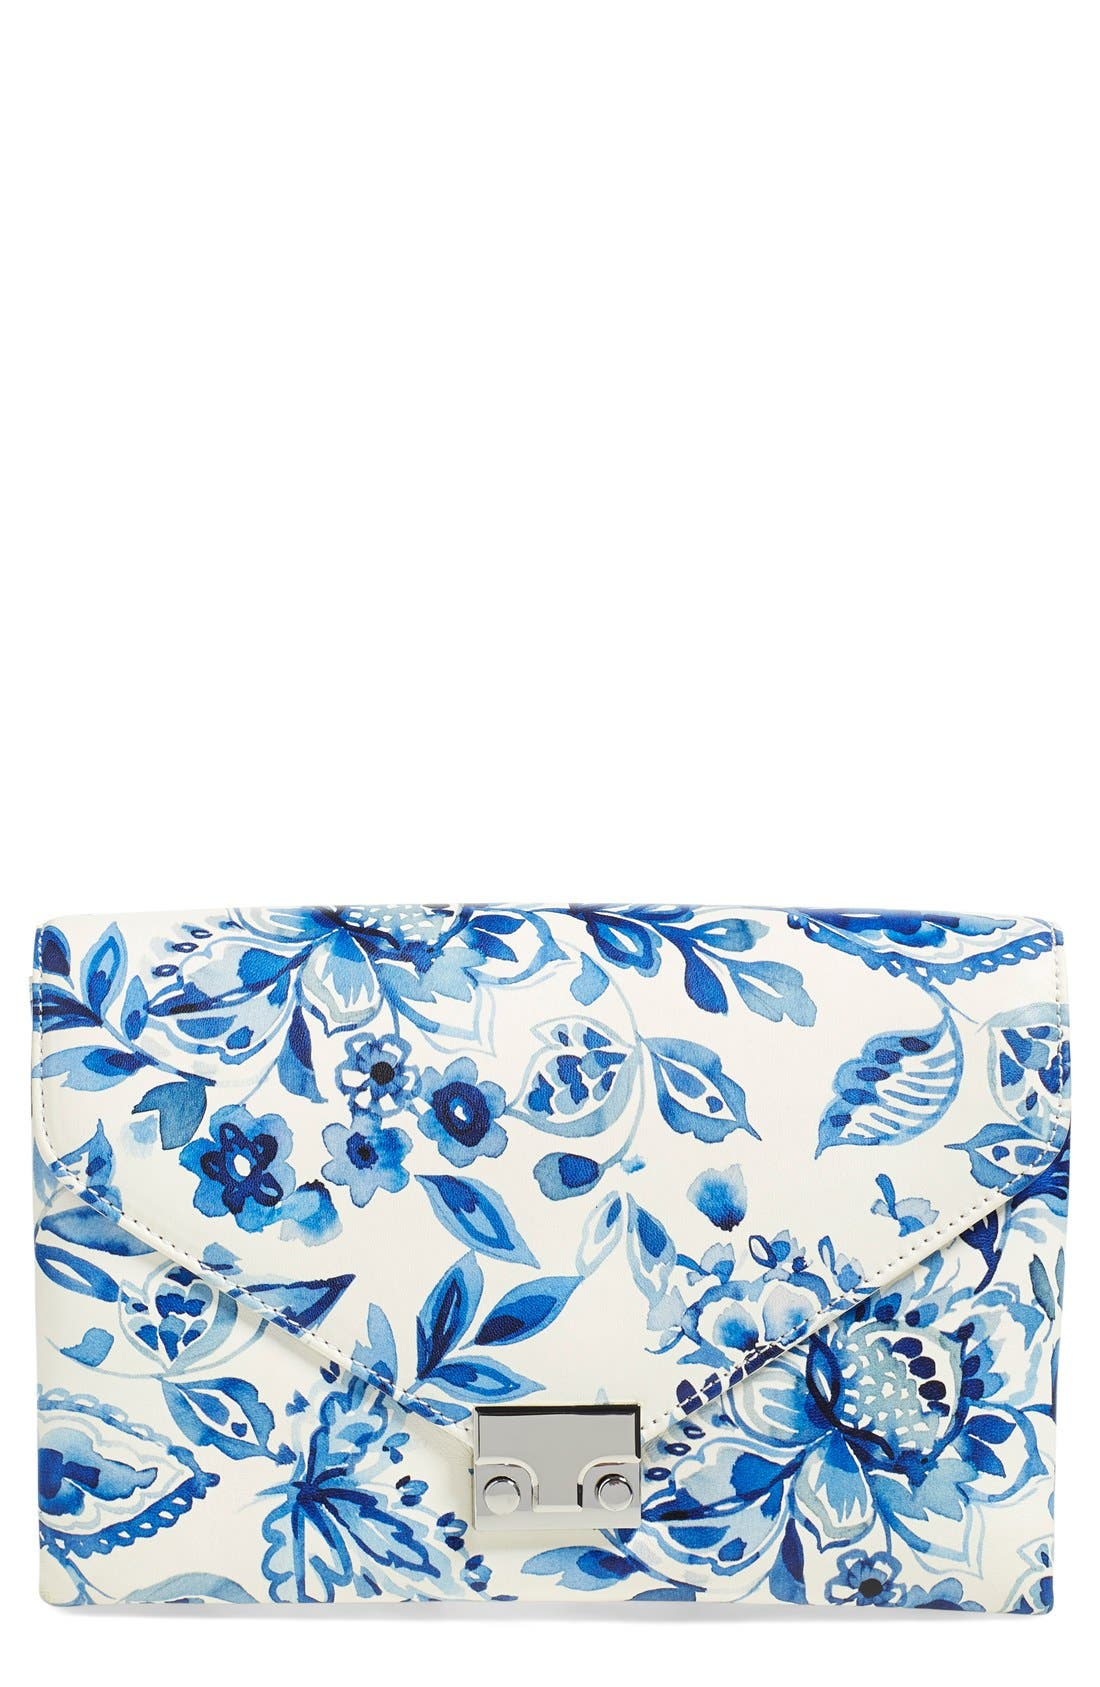 Main Image - Loeffler Randall 'Lock' Floral Print Leather Clutch